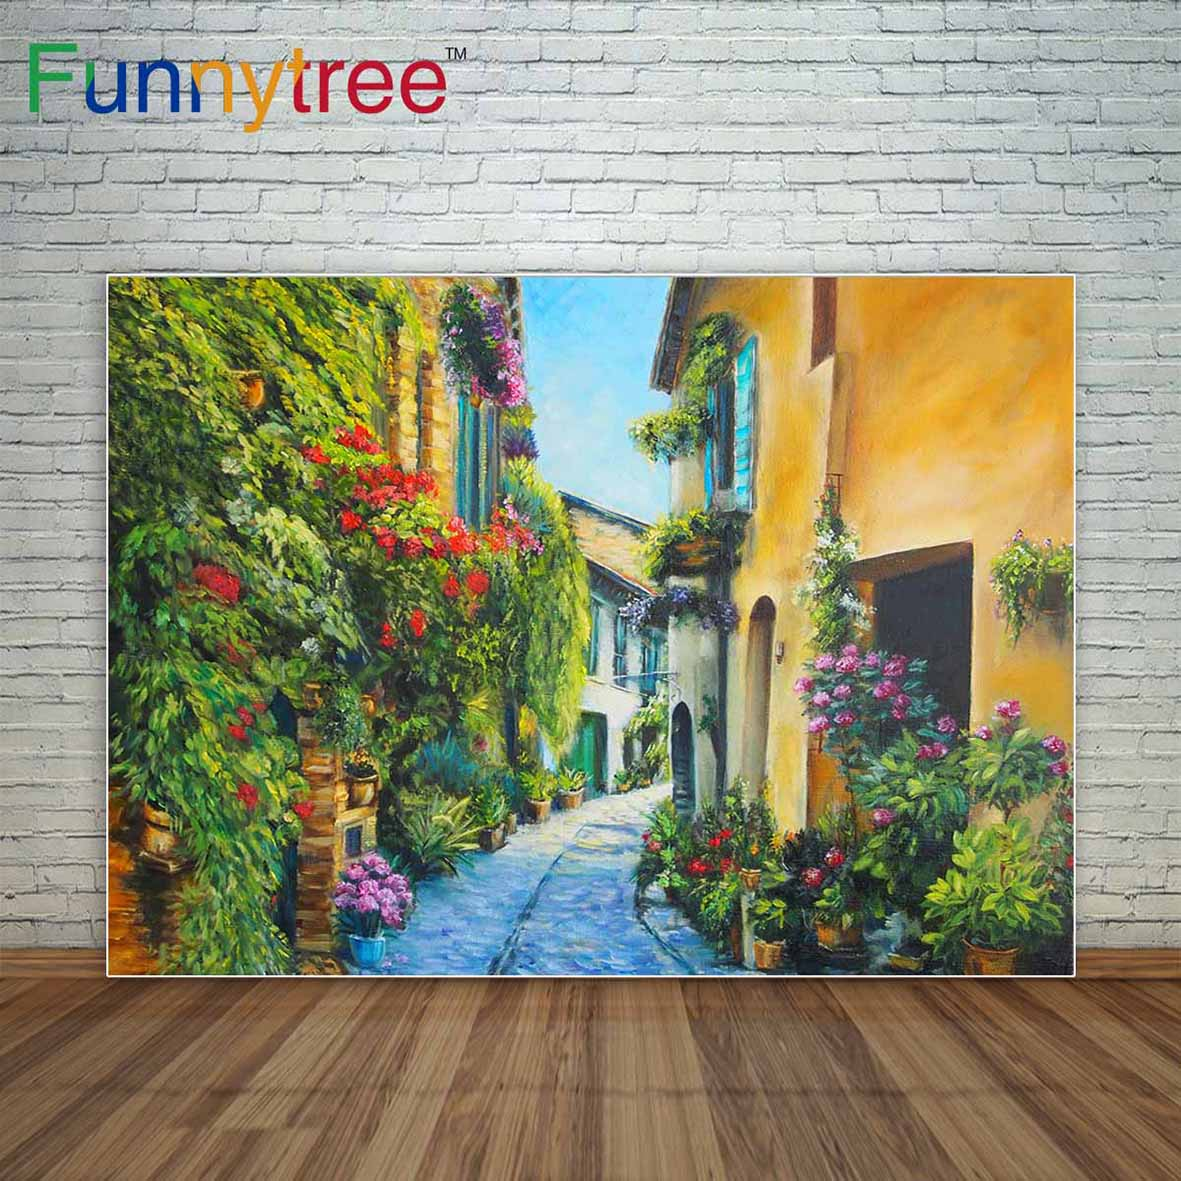 Funnytree photo background alley between houses in city fresh flowers backdrop for photo shooting painting photocall party